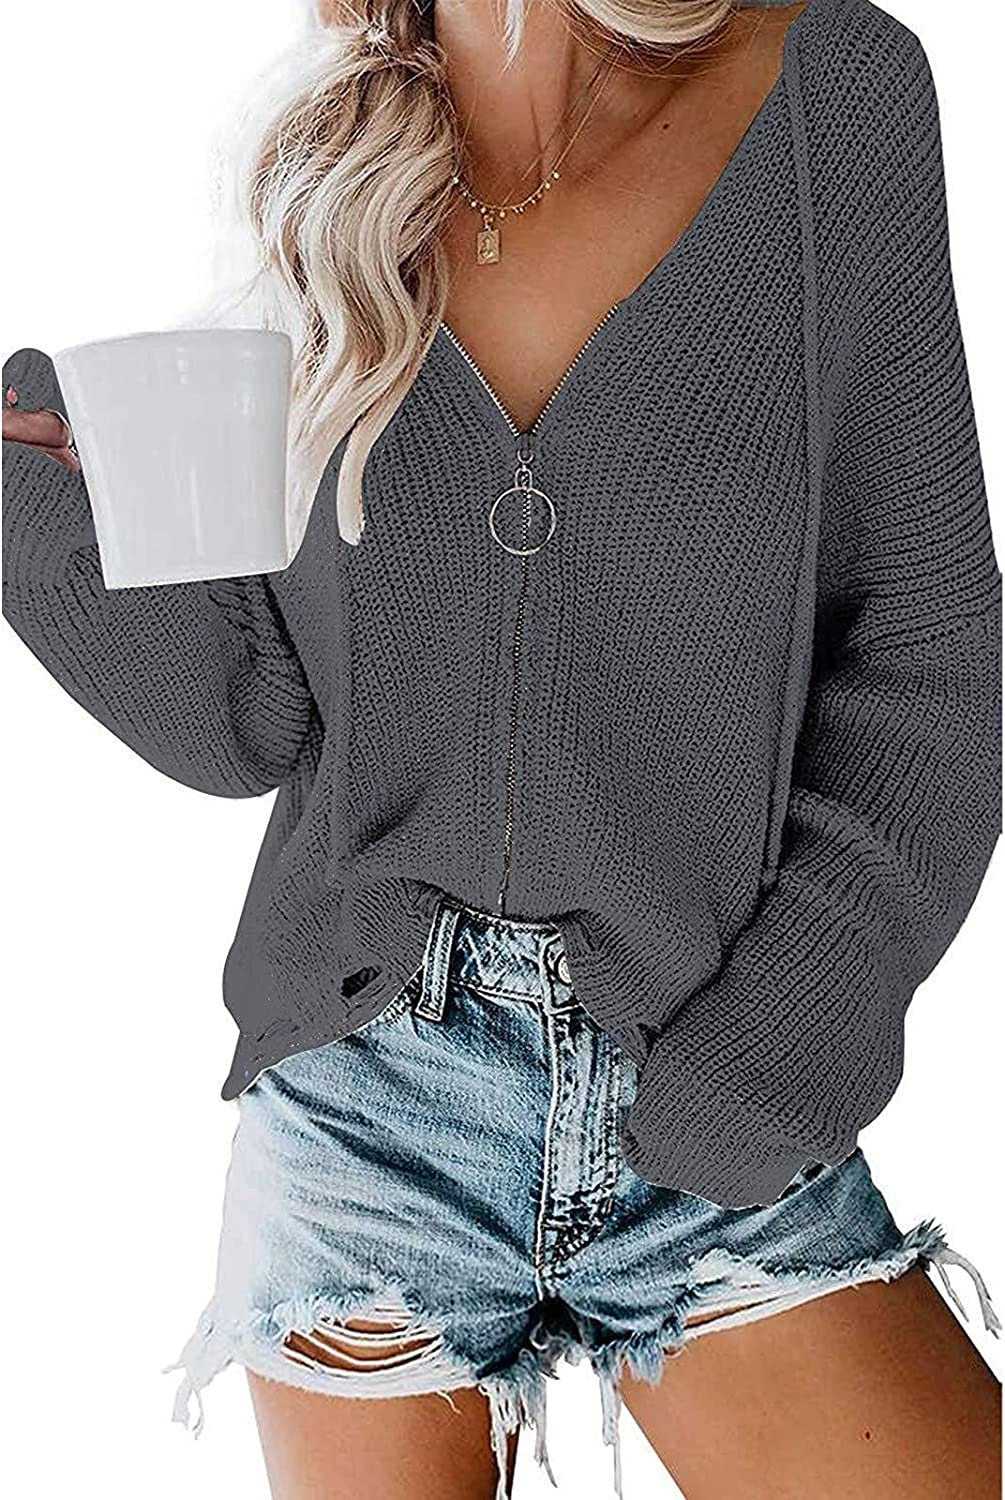 WYBAXZ Hooded Sweater for Women,Fall Long Sleeve Knited Zipper V-Neck Top Blouse,Casual Solid Women's Hoodie